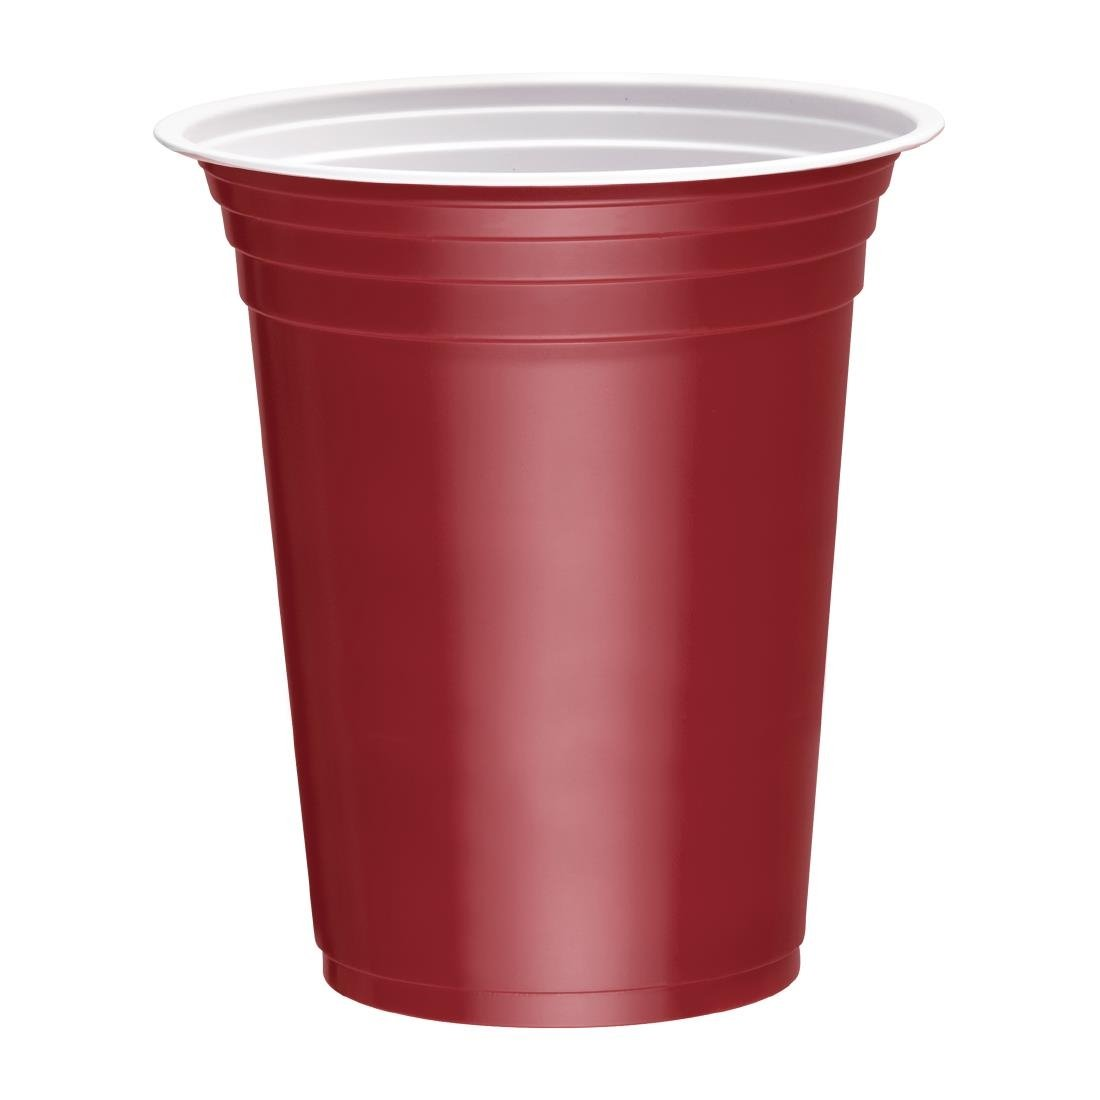 Fiesta Red Party Cups 340ml / 12oz x 1000 Pack of 1000